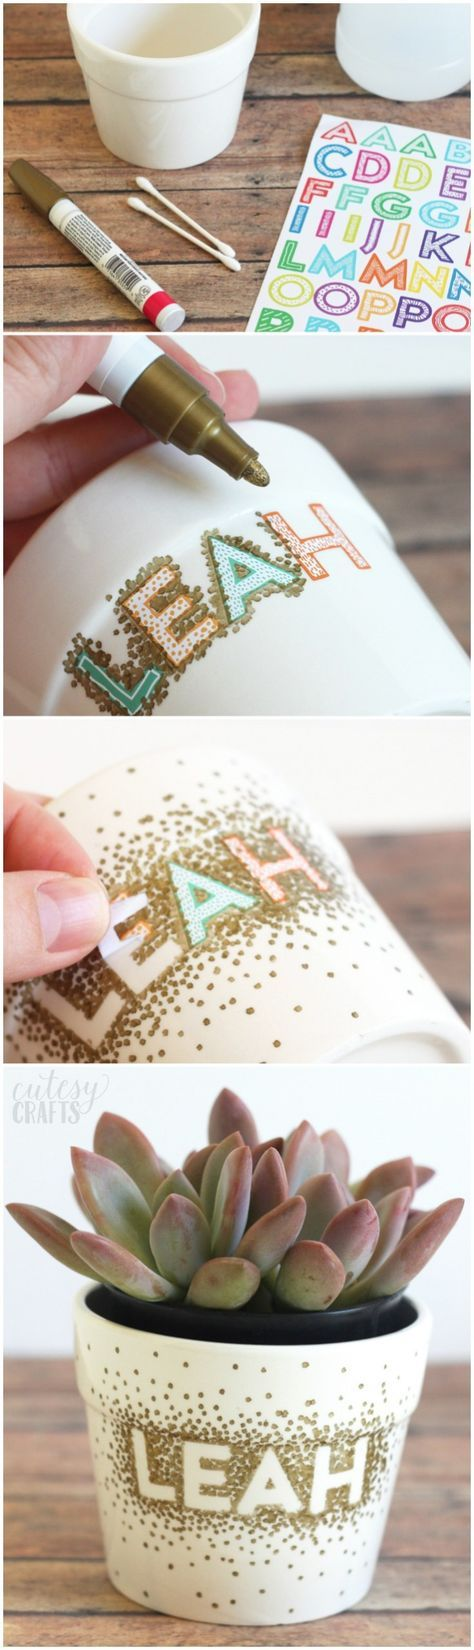 Use a Sharpie to make dots in this unique flower pot craft! It's so easy that a child could do it, and you just need a few simple supplies. via /diy_candy/